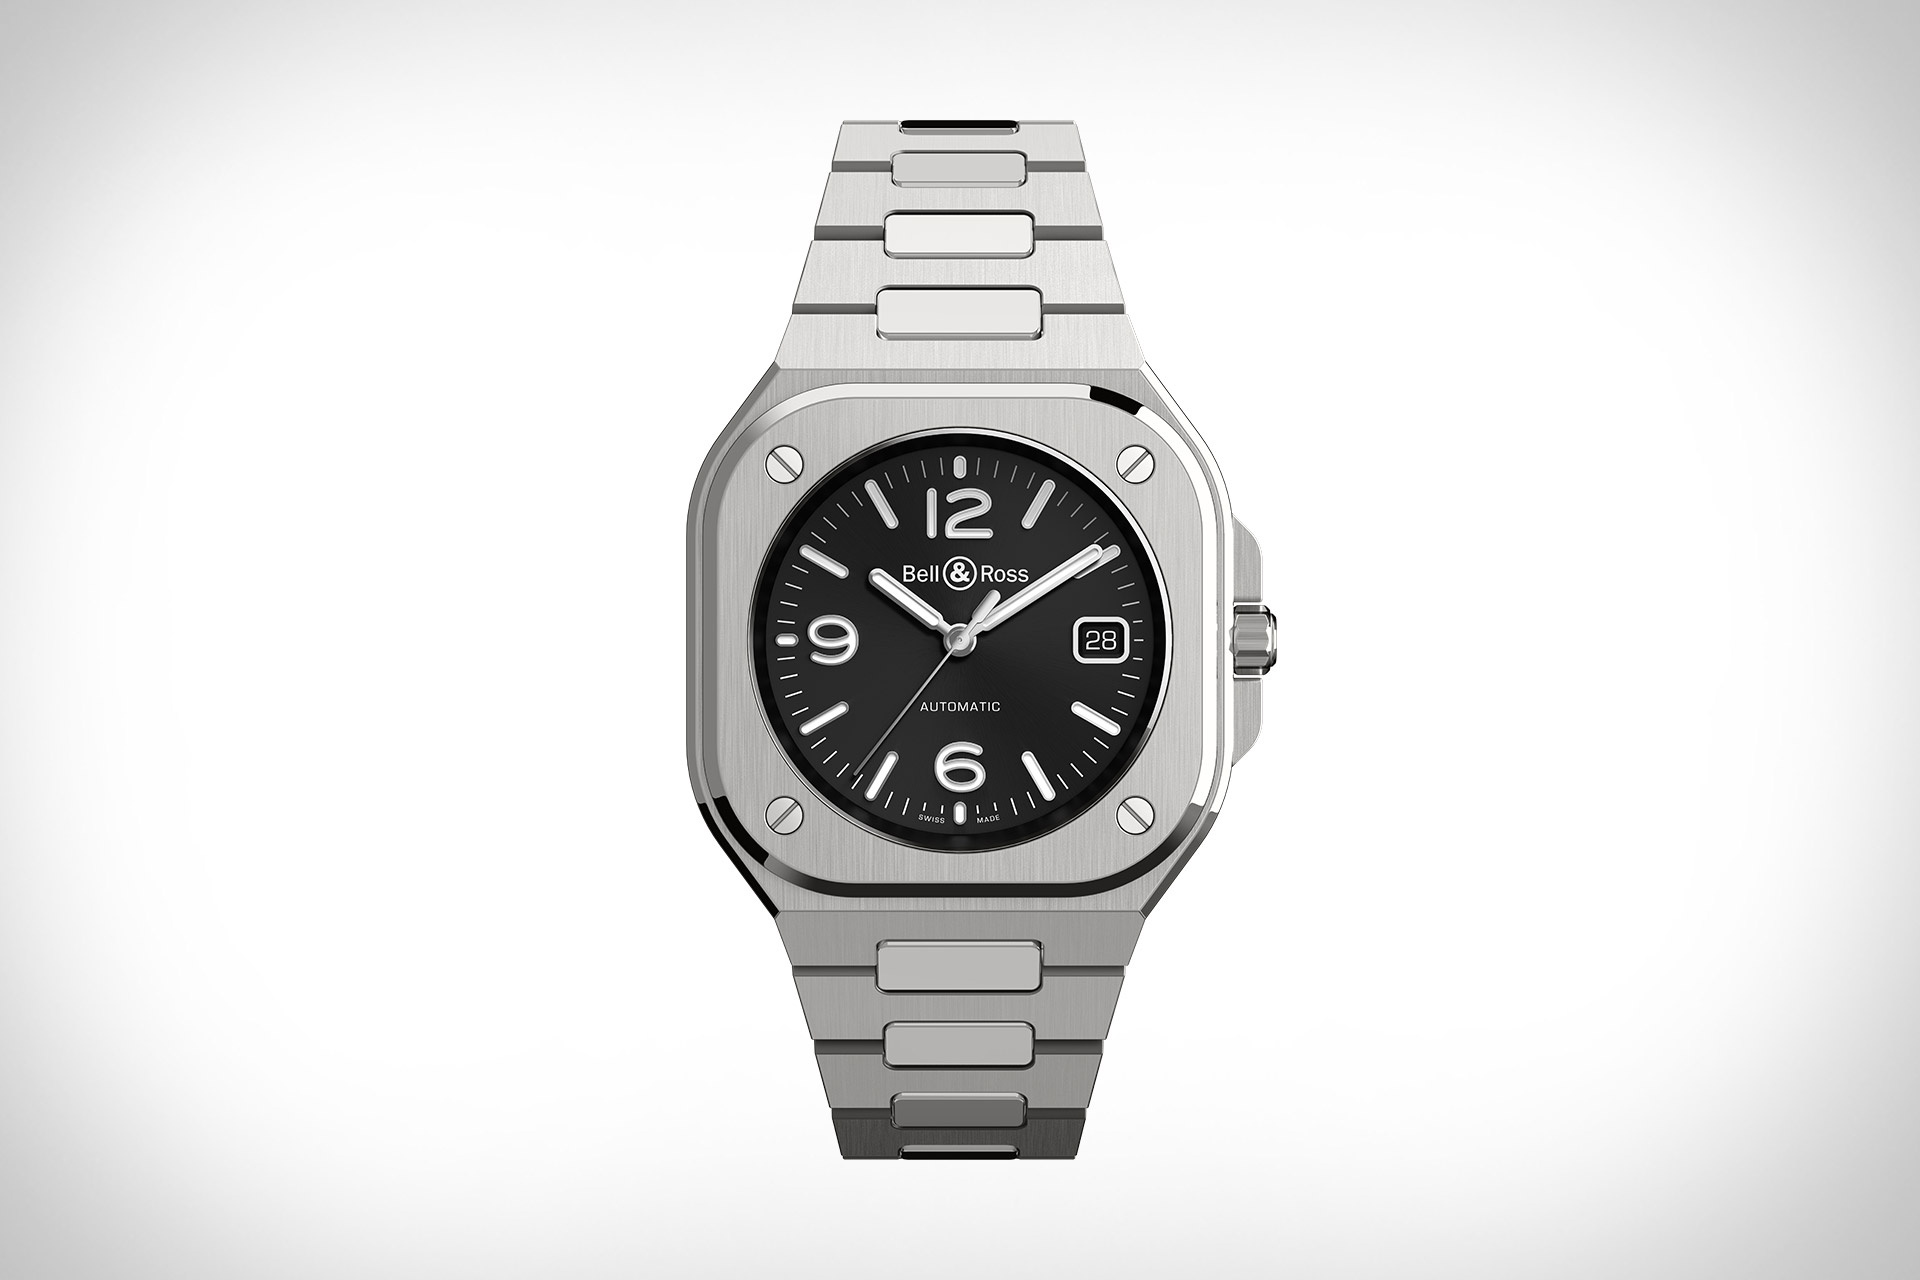 Bell & Ross BR 05 Watch Collection